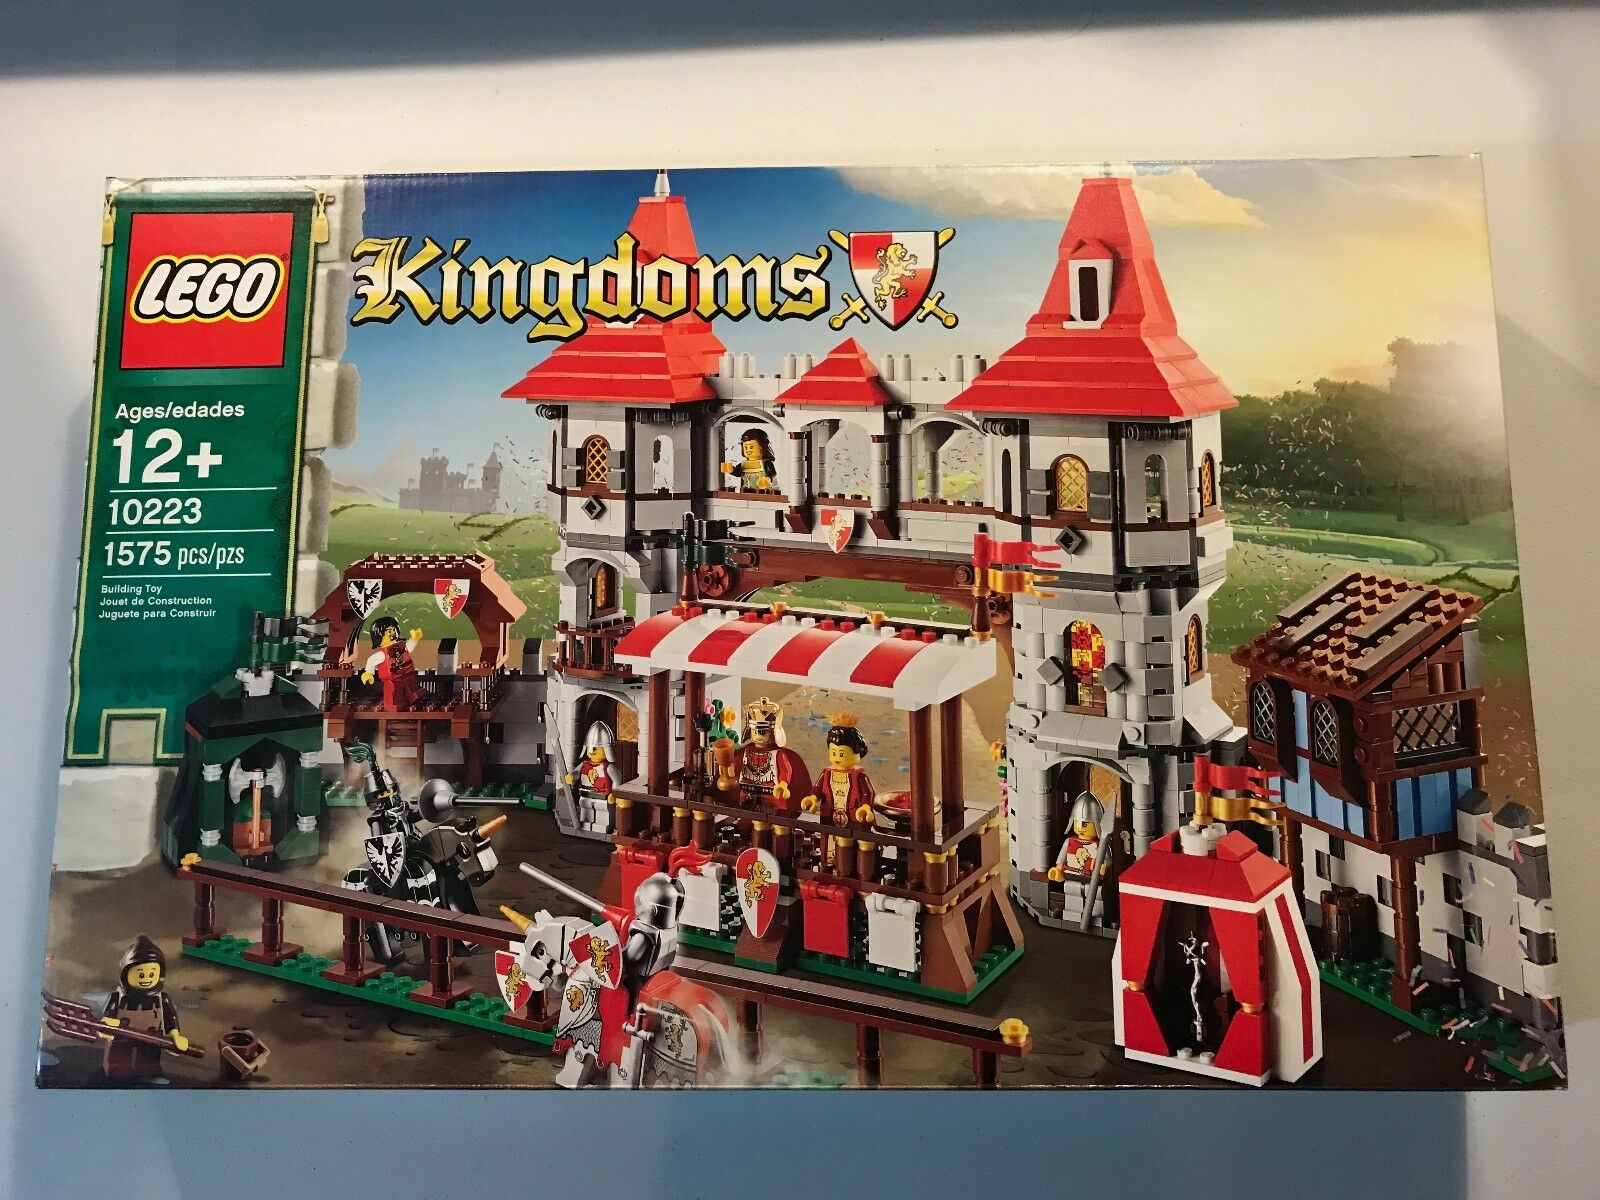 LEGO 10223 Kingdoms Joust Joust Joust Brand New Factory Sealed 1575 pieces 2012 1111e9